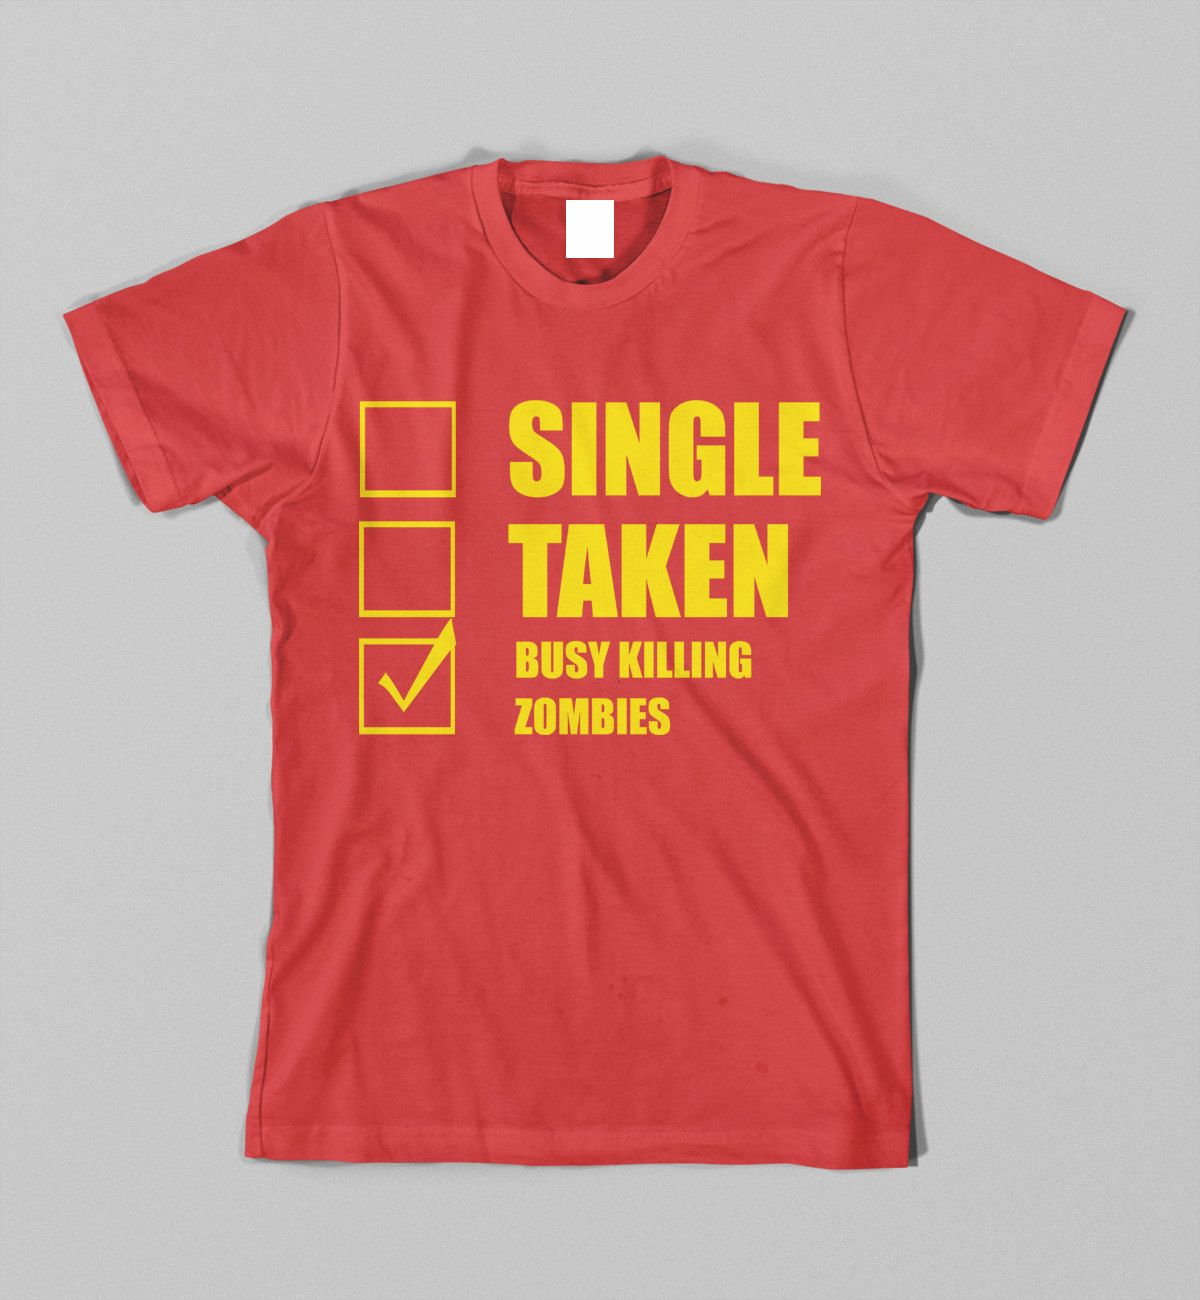 Funny Single Shirts | Is Shirt